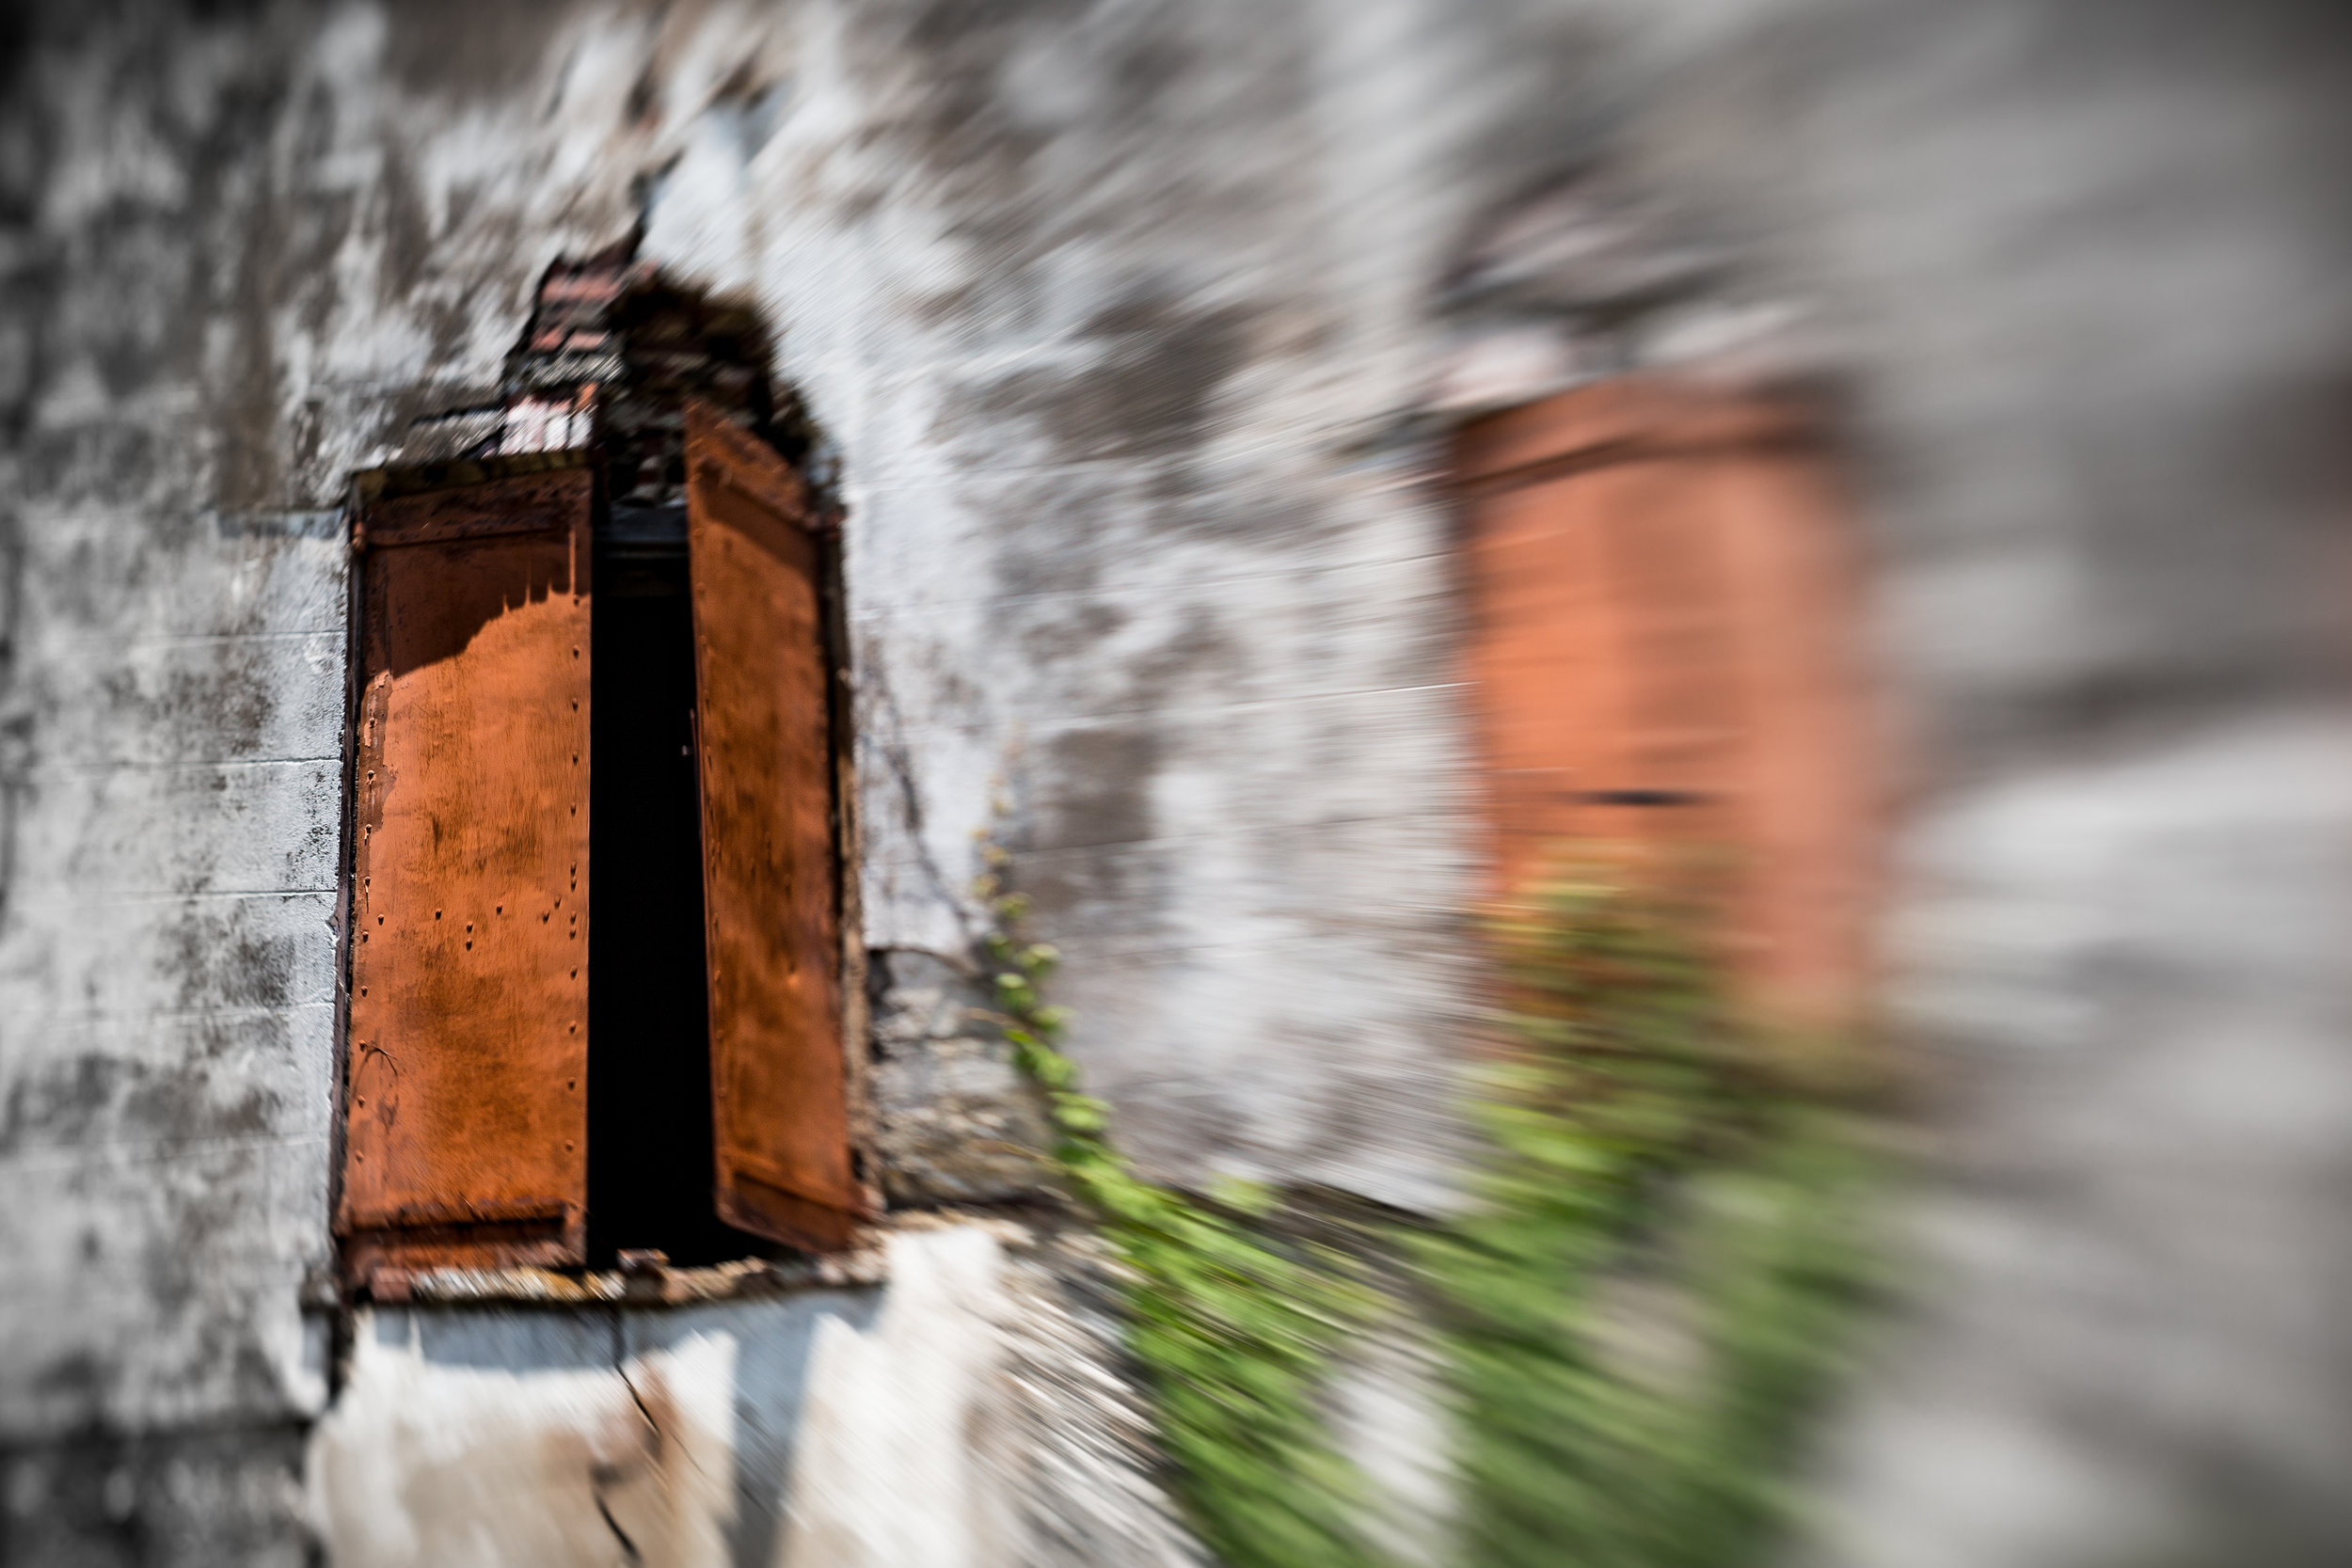 A LensBaby photo of old building in Darien